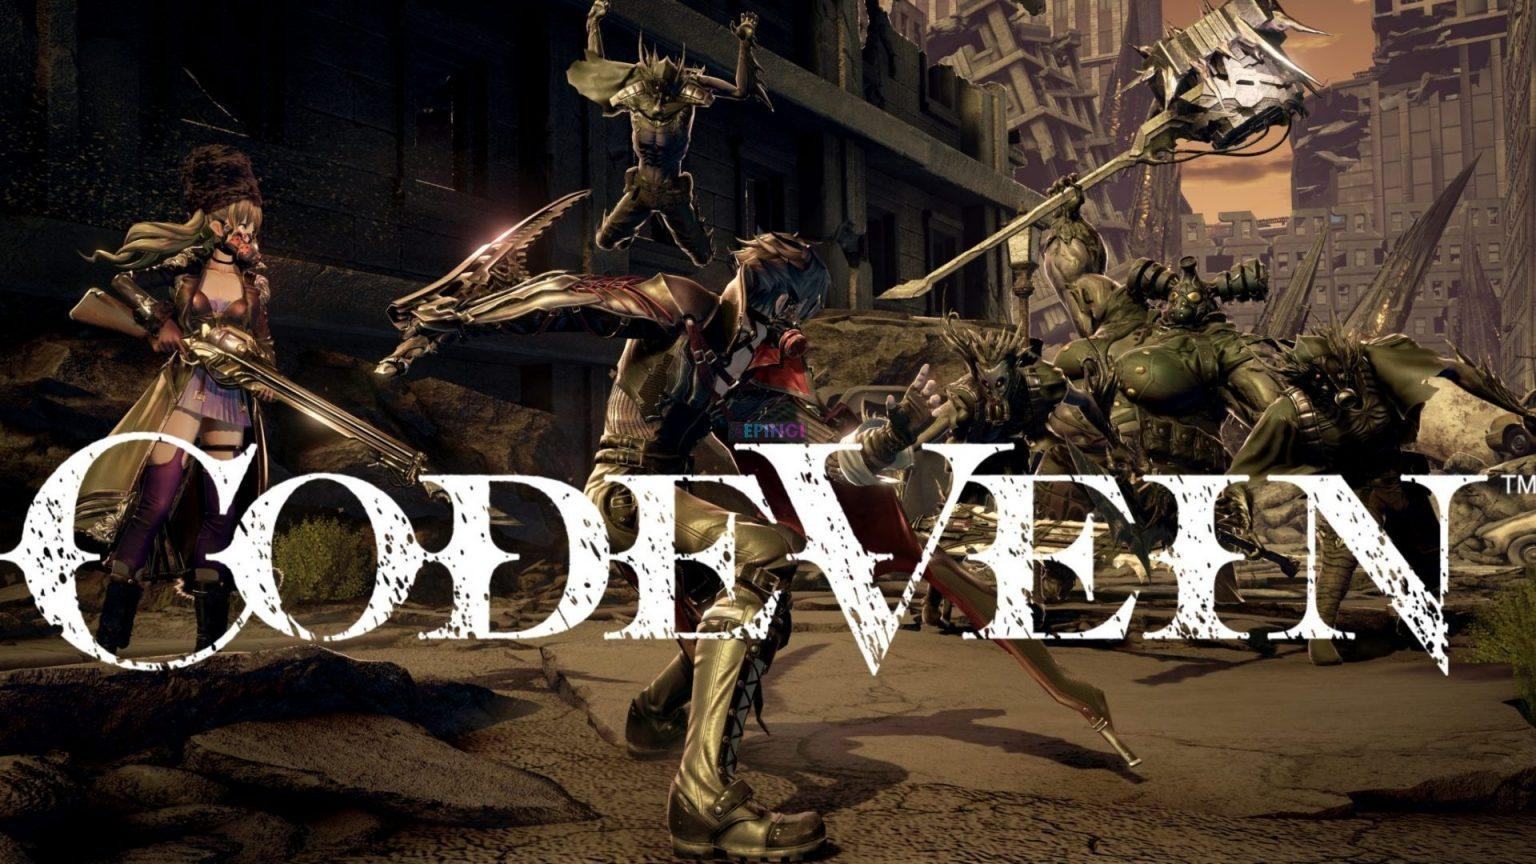 Code Vein Cracked PC Full Unlocked Version Download Free Online Multiplayer Game Torrent